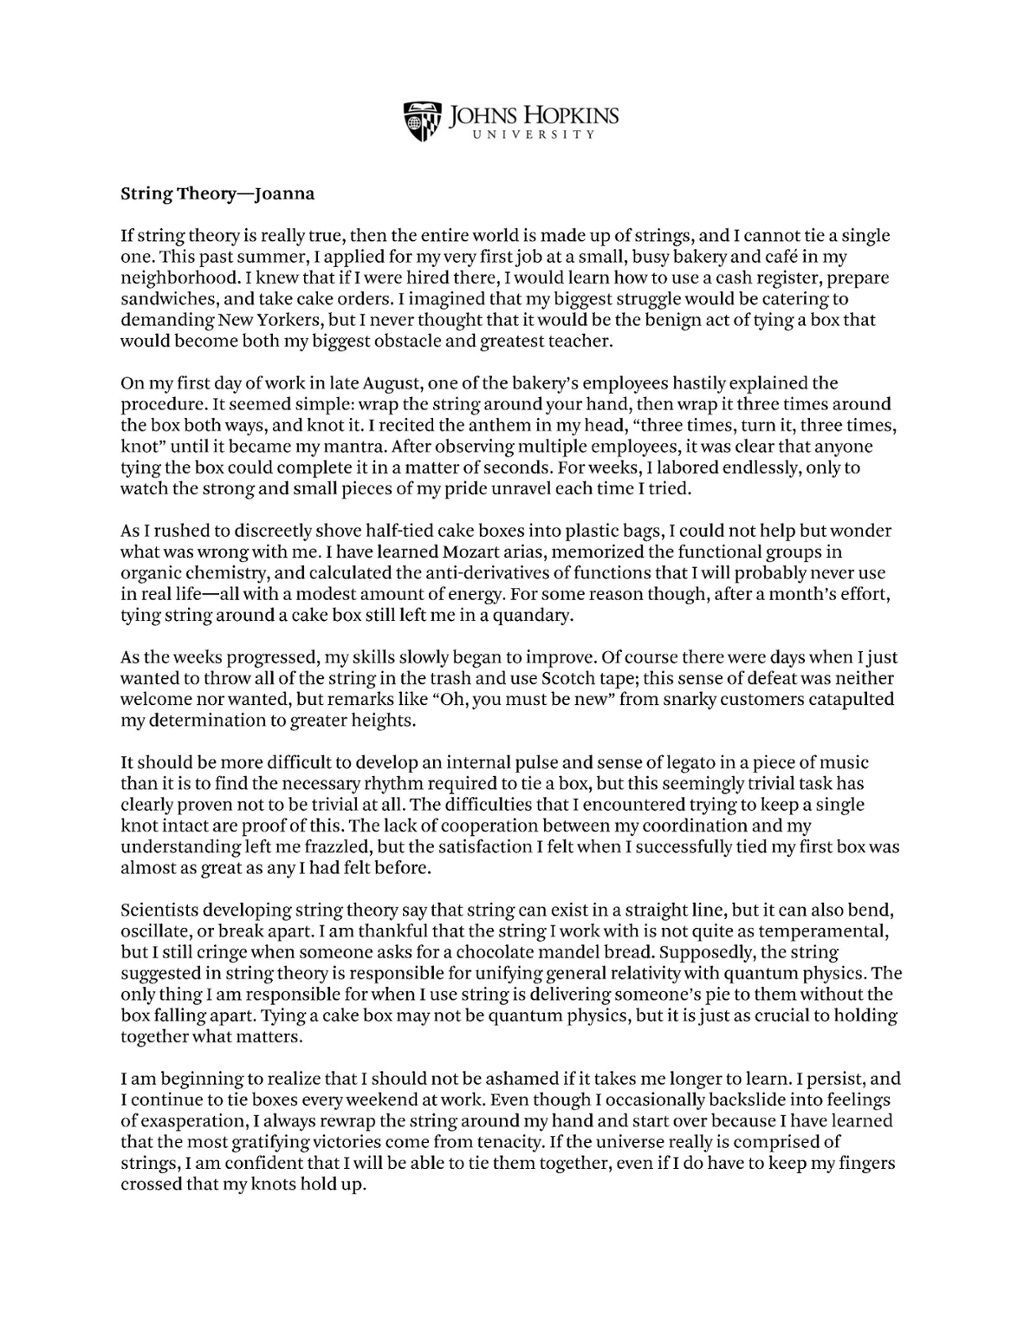 009 Impressive College Essay Format Example Idea  Examples Writing Application Sample AdmissionFull